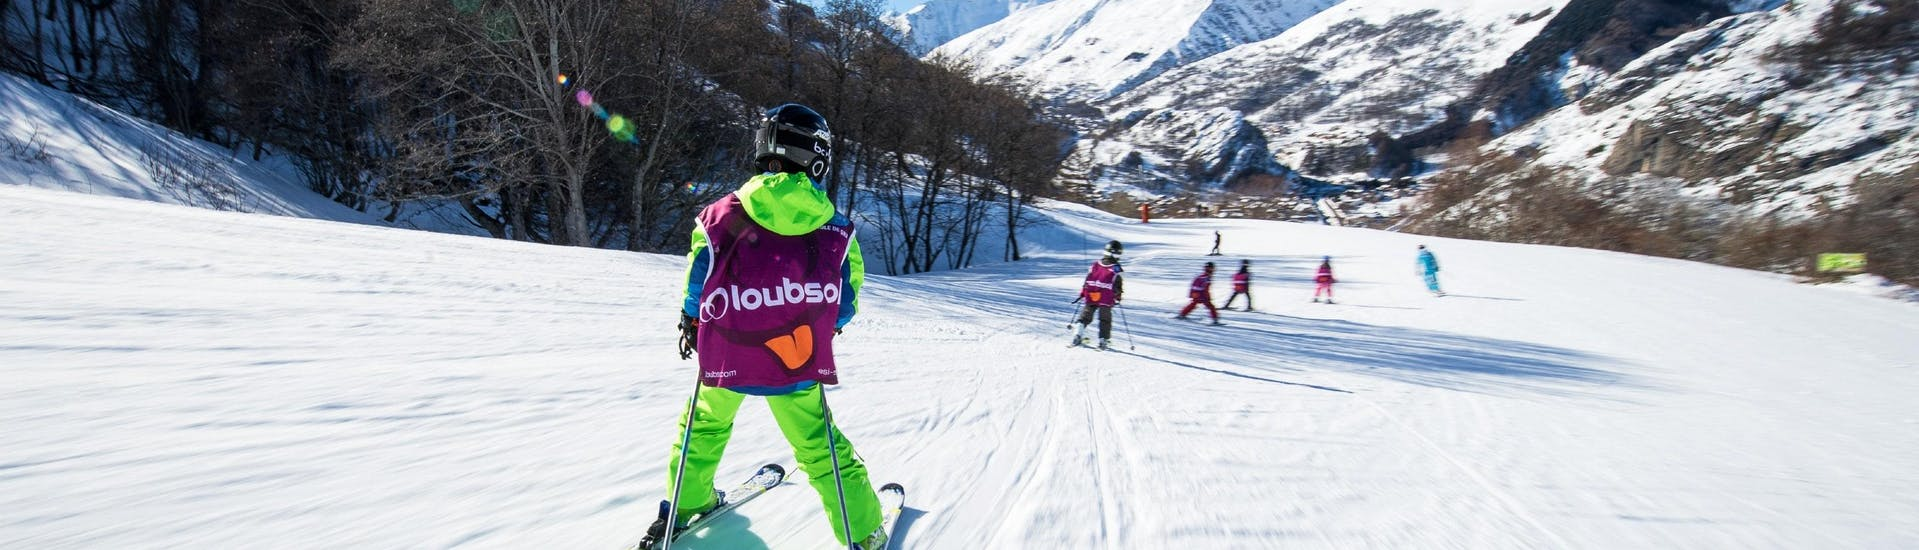 Kids are skiing down a slope during their Kids Ski Lessons (5-13 y.) for All Levels with the ski school ESI Ski Family in Val Thorens.